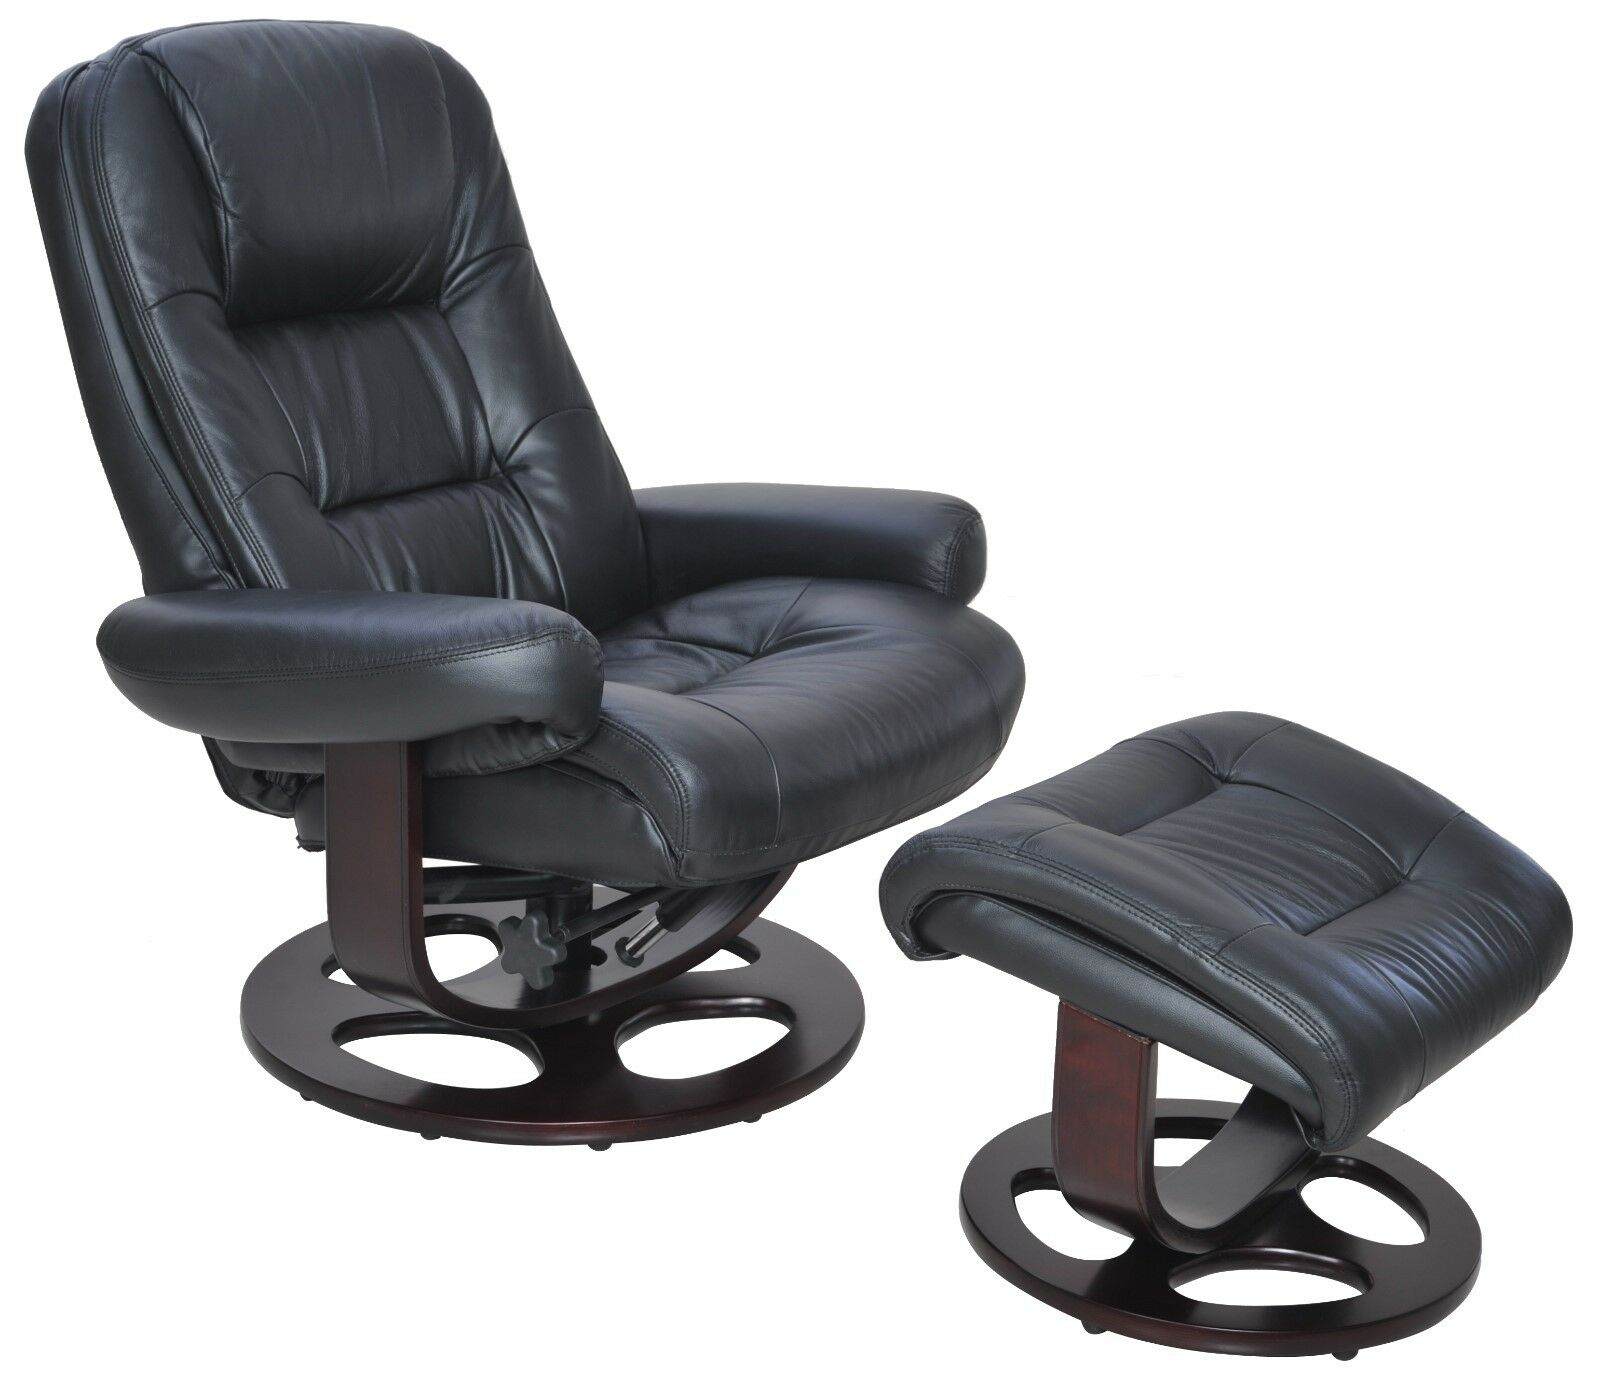 Leather Recliner Chair With Ottoman Barcalounger Jacque Pedestal Leather Recliner Chair And Ottoman